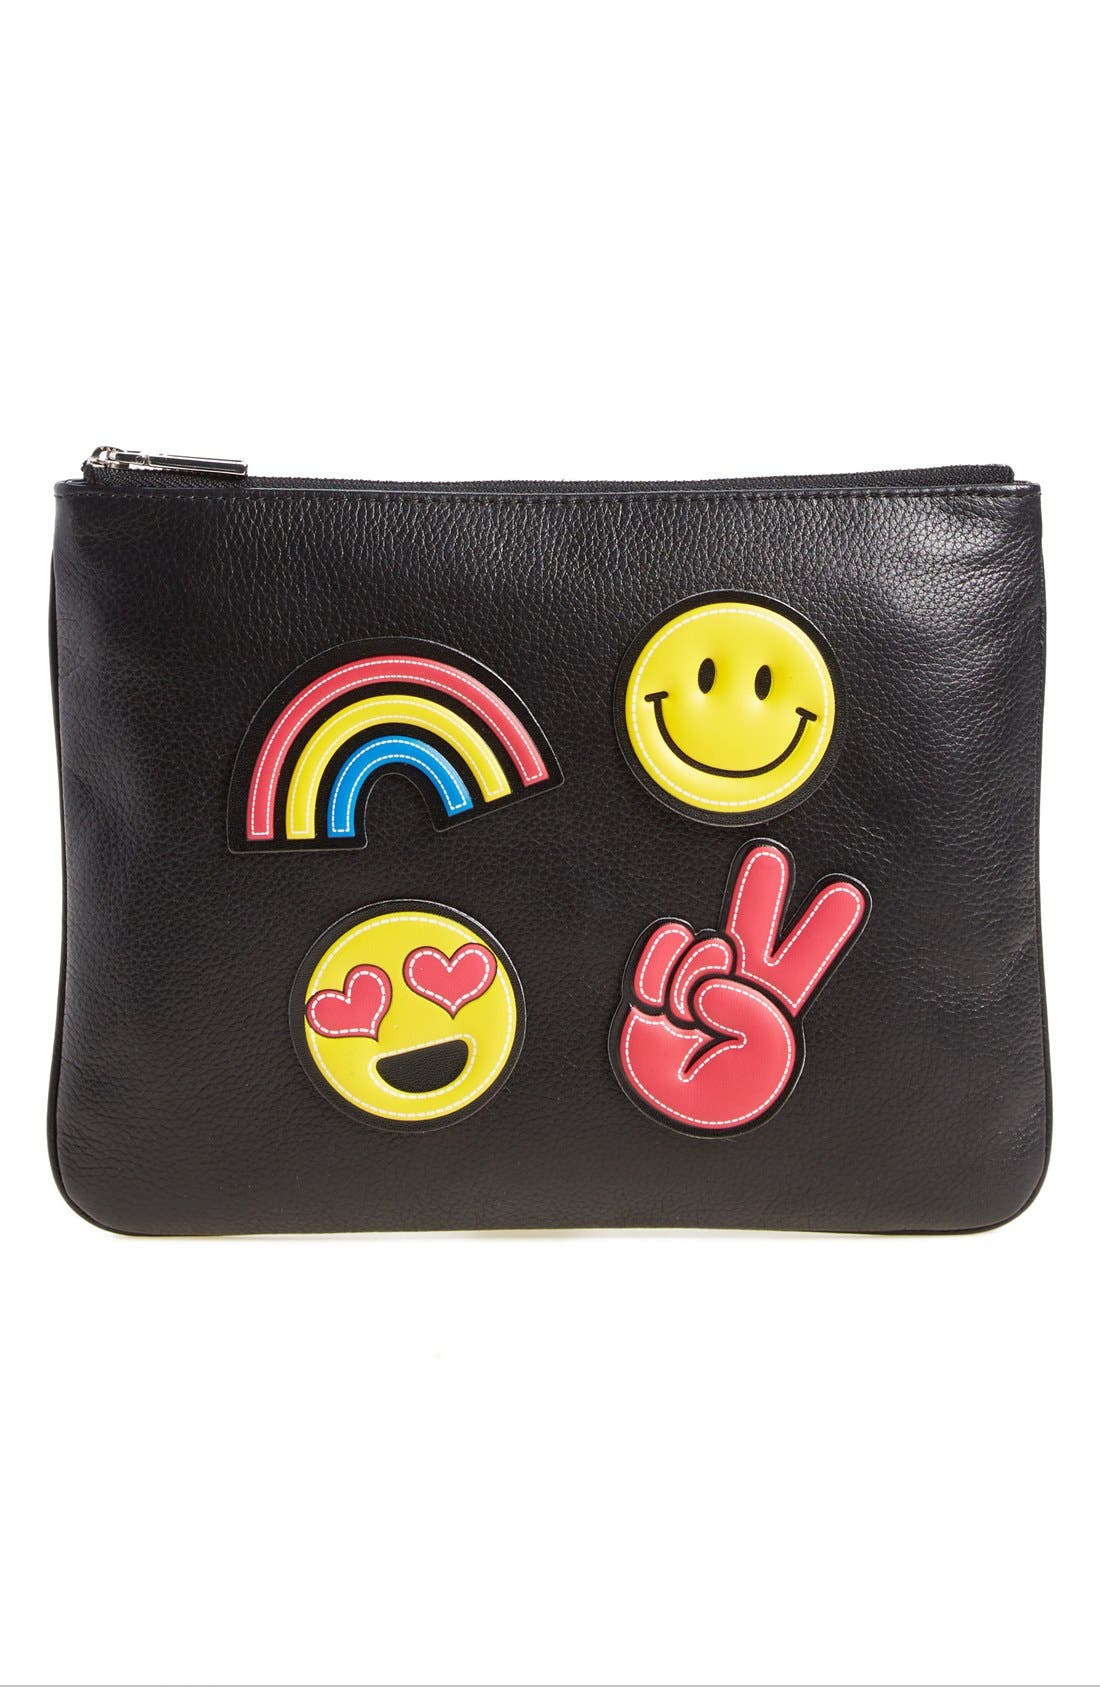 Main Image - Rebecca Minkoff 'Good Vibes' Customizable Leather Pouch with Emoji Stickers